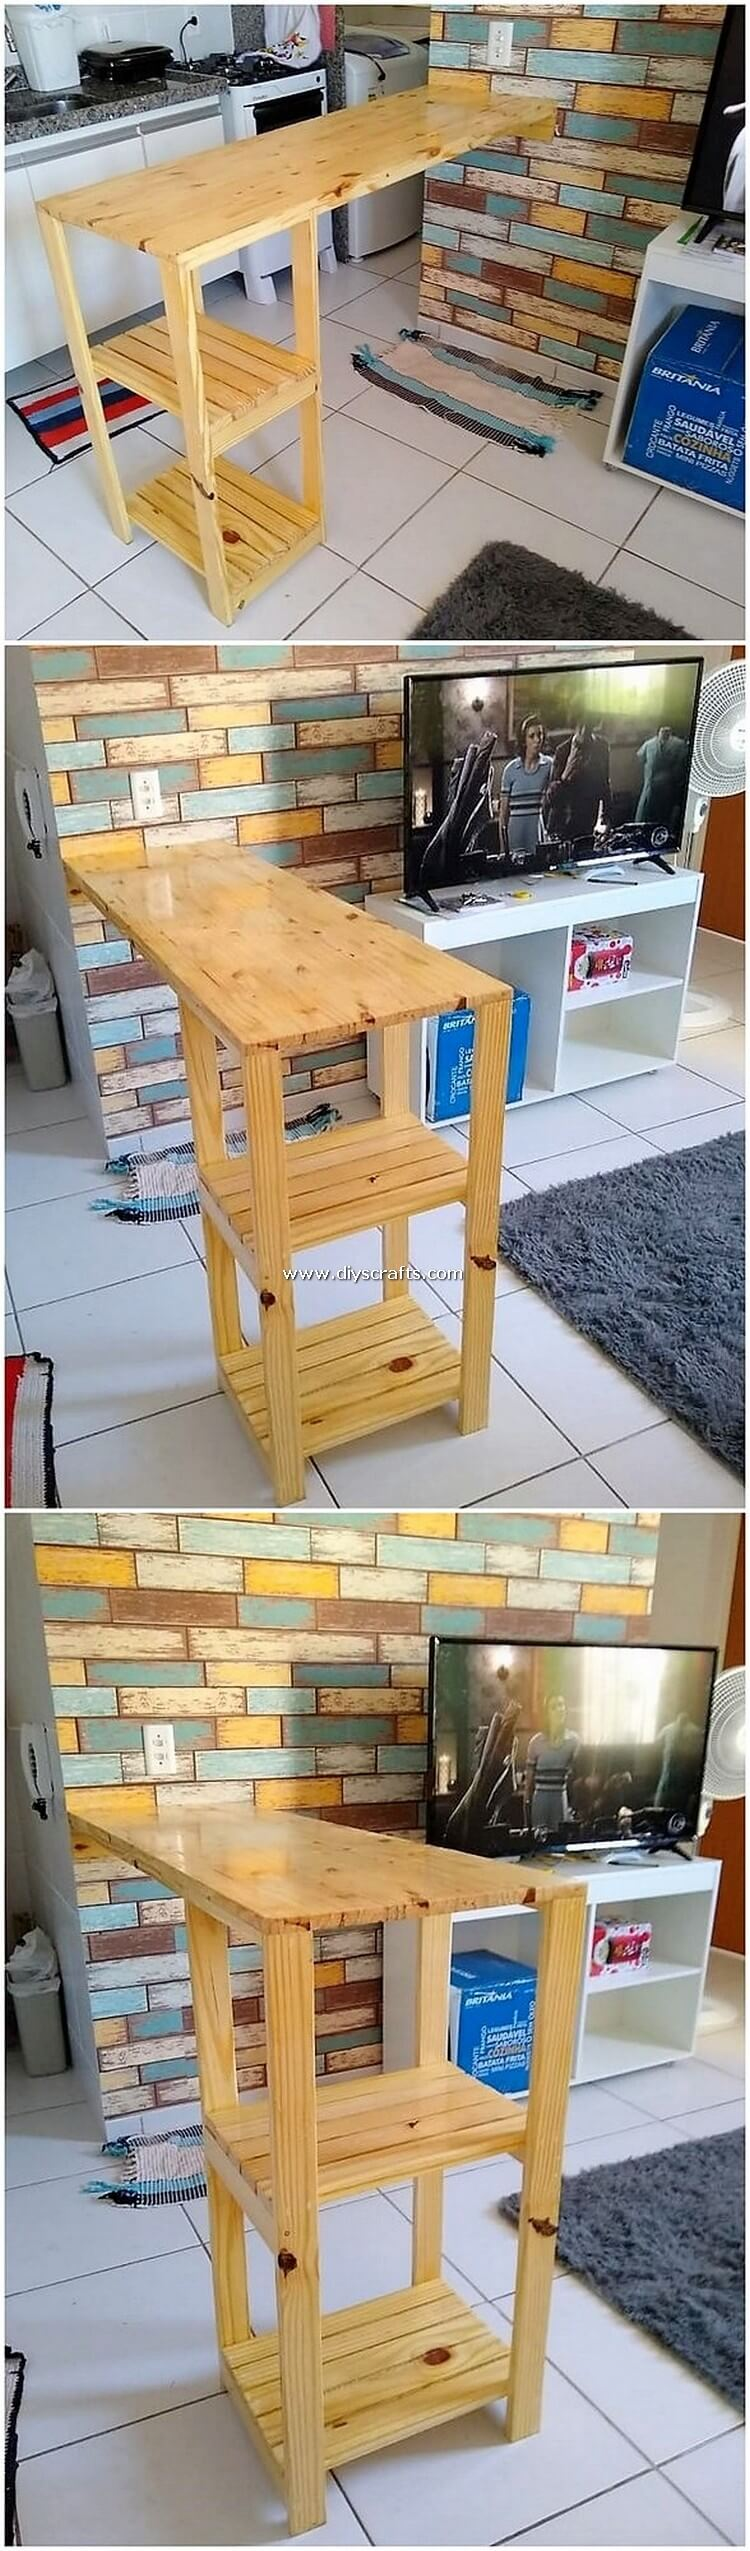 Pallet-Kitchen-Counter-Table